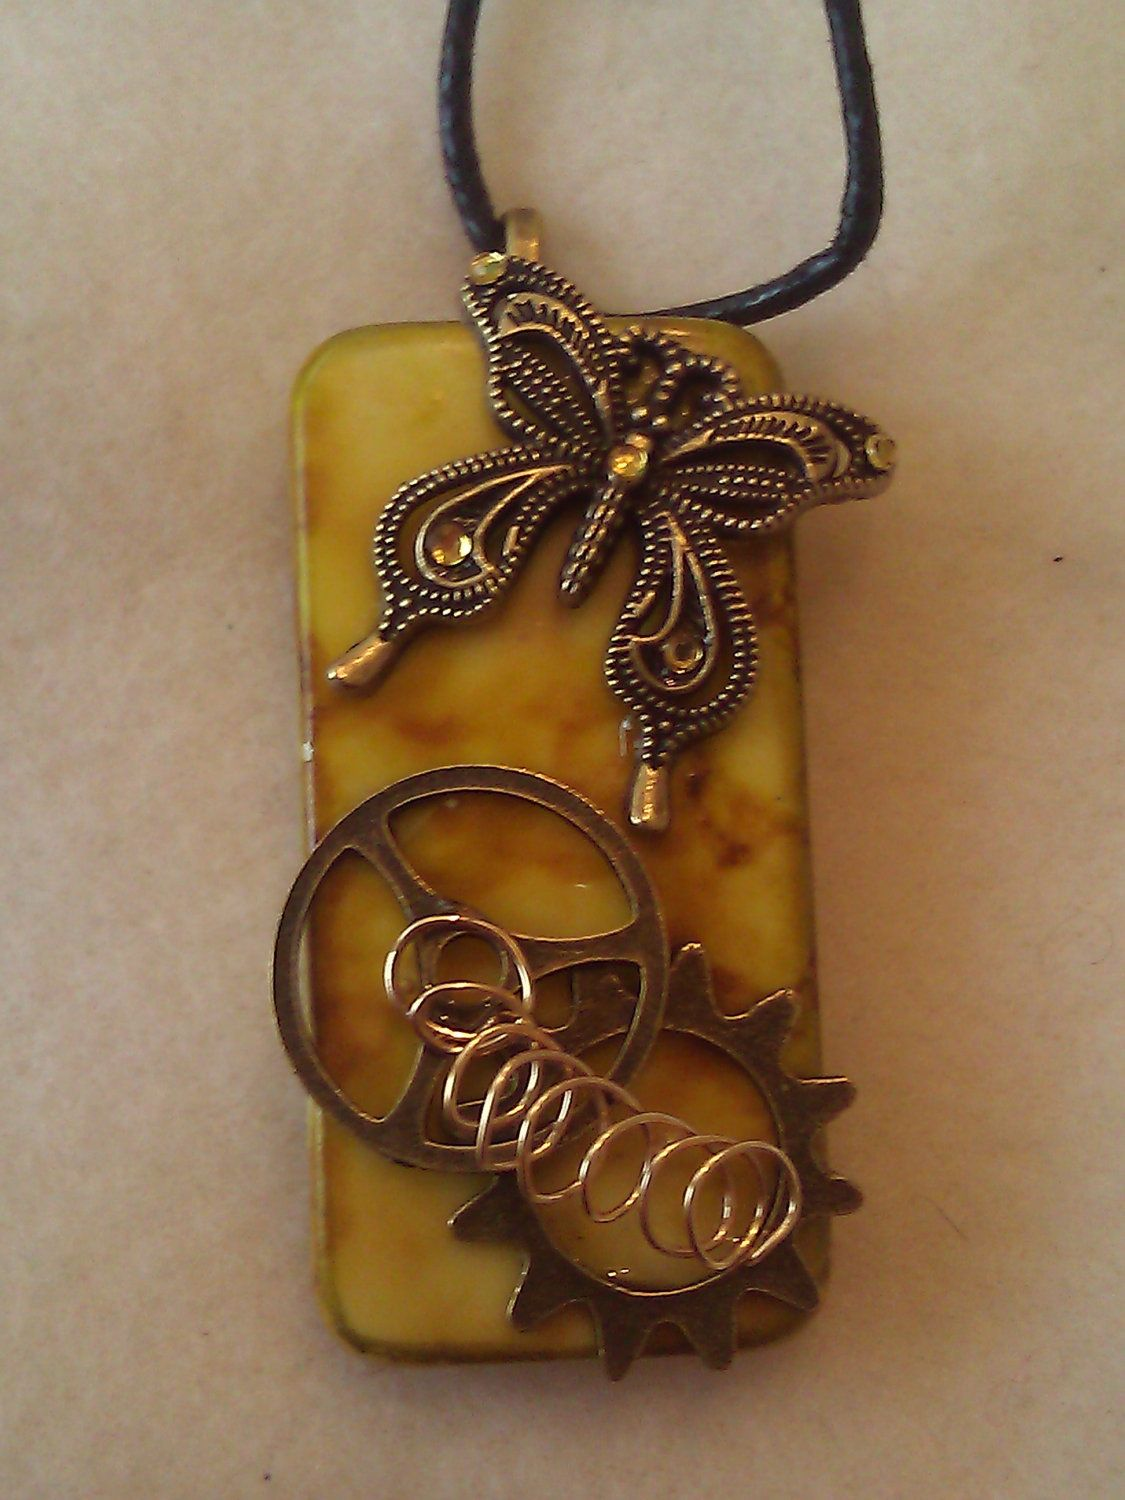 Steampunk butterfly domino necklace pendant 1000 via etsy steampunk butterfly domino necklace pendant 1000 via etsy aloadofball Image collections